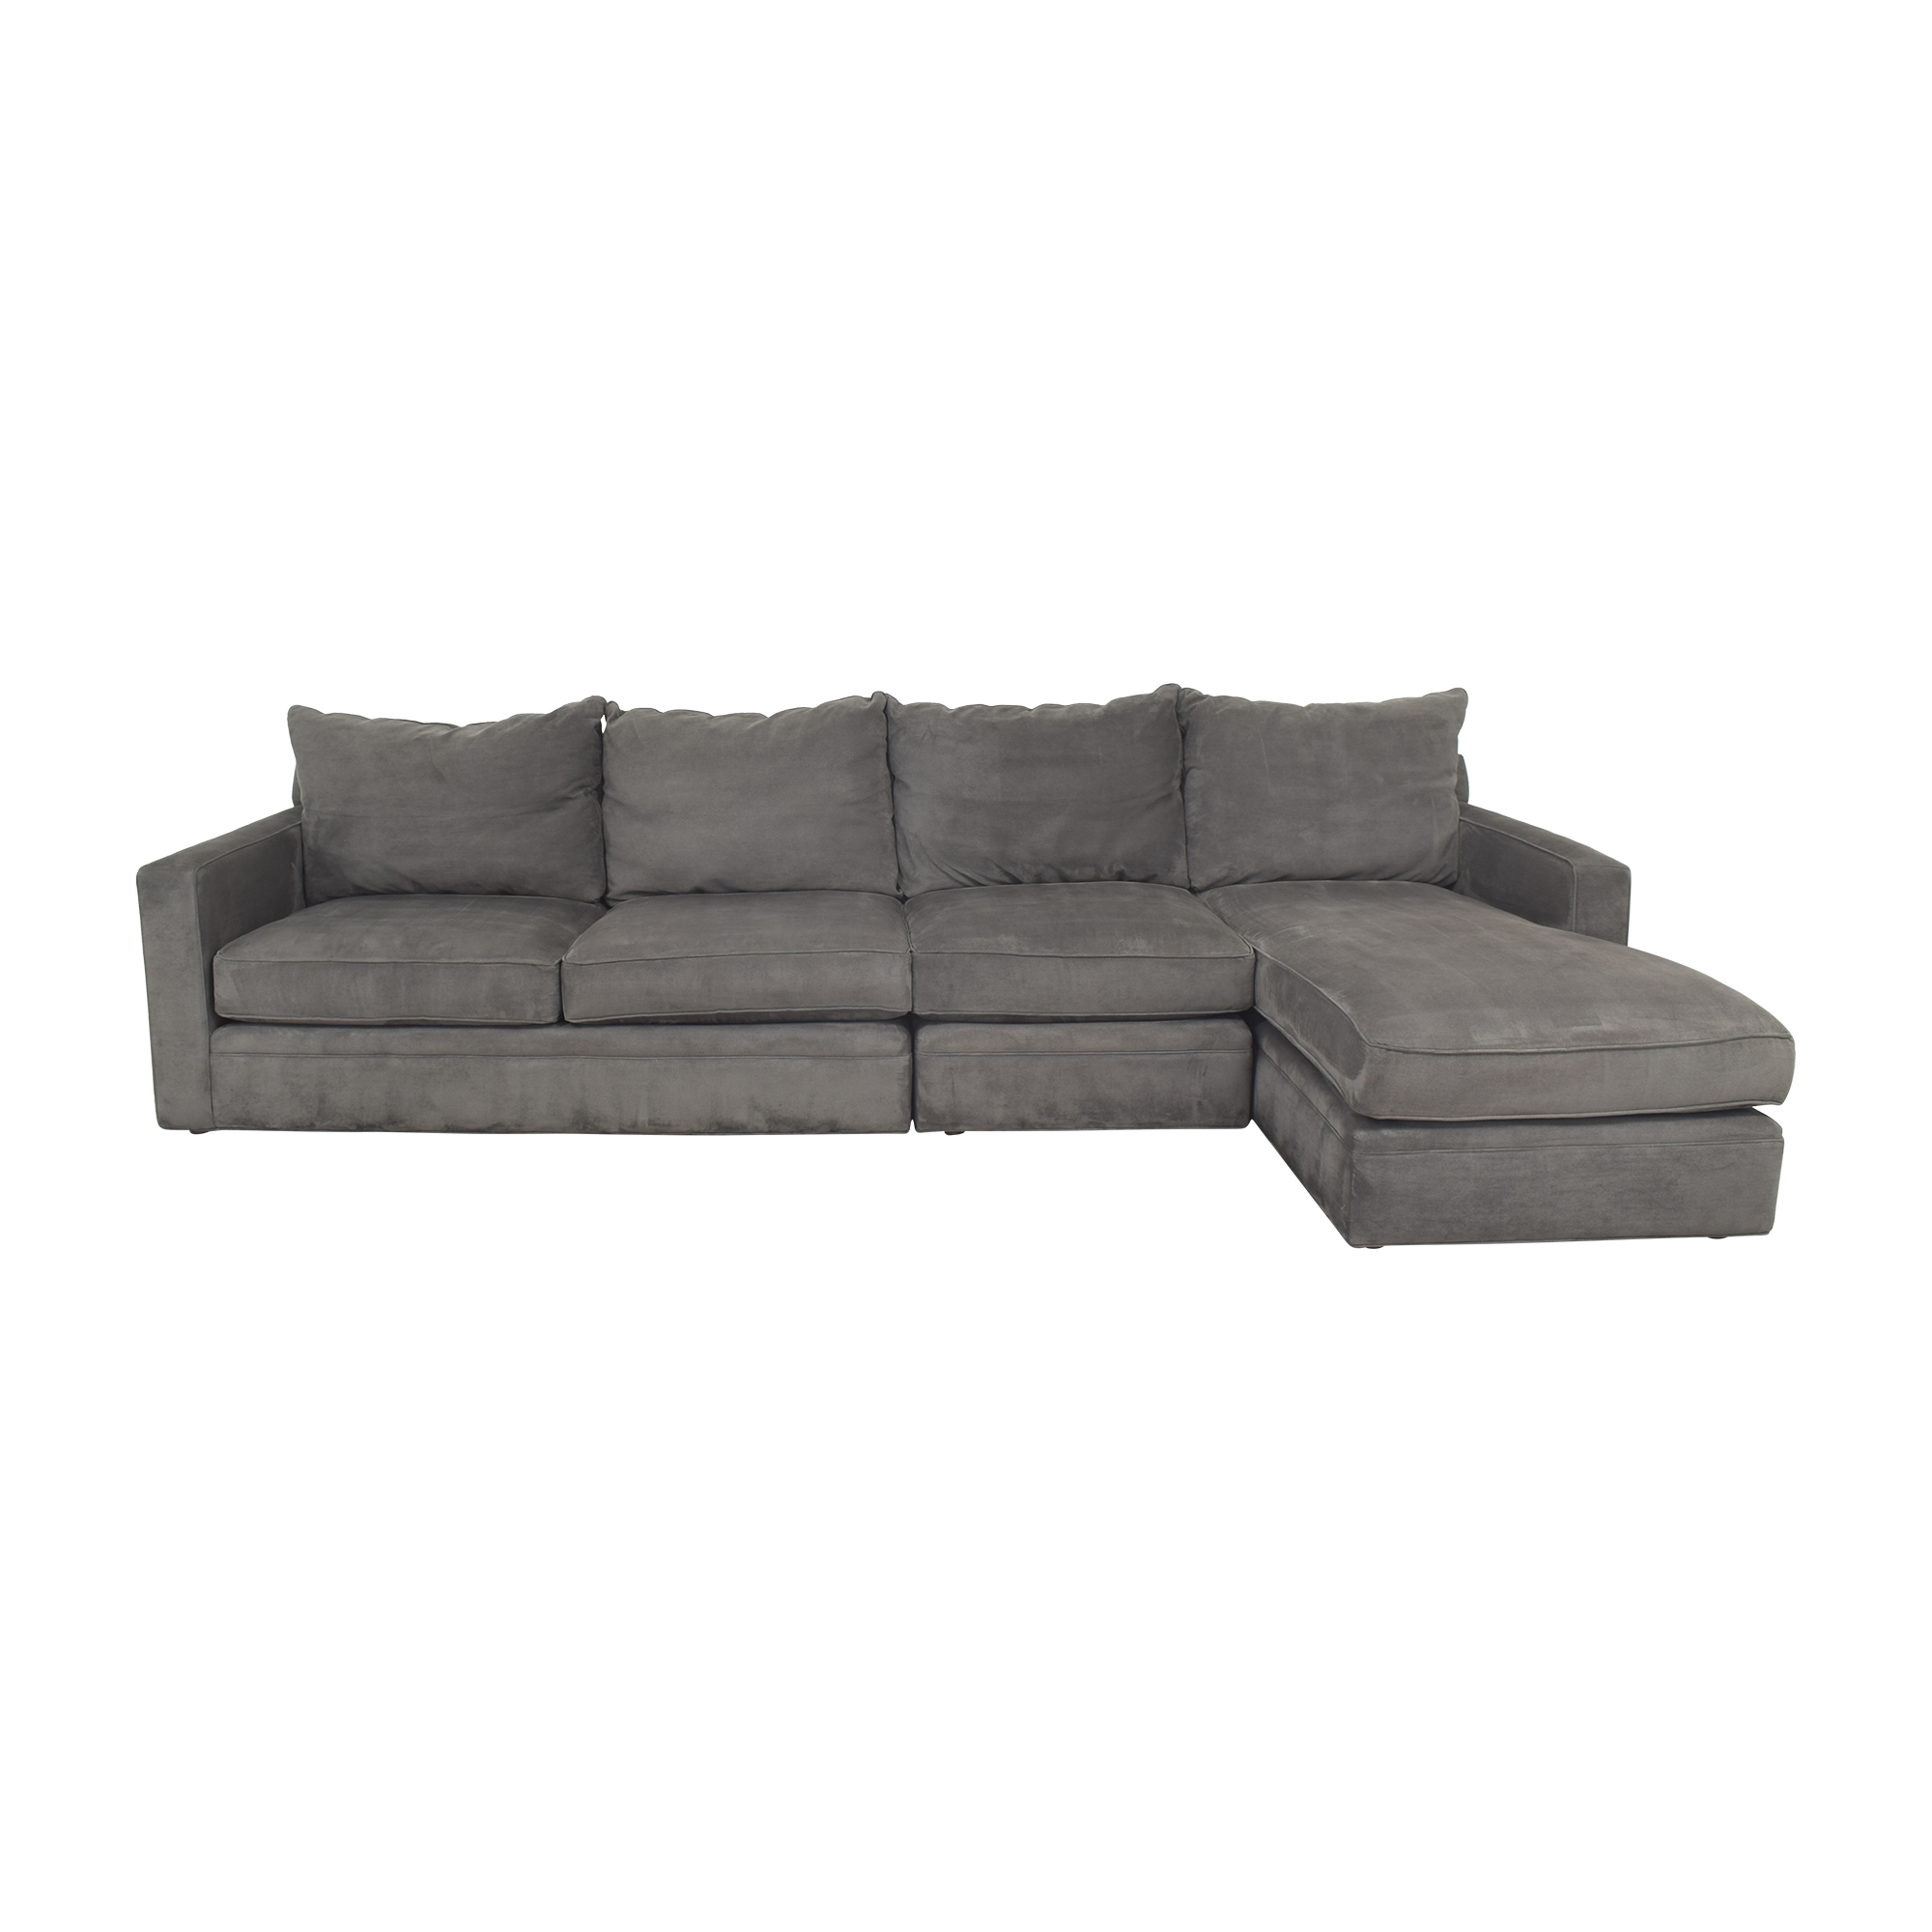 buy Room & Board Chaise Sectional Sofa Room & Board Sectionals